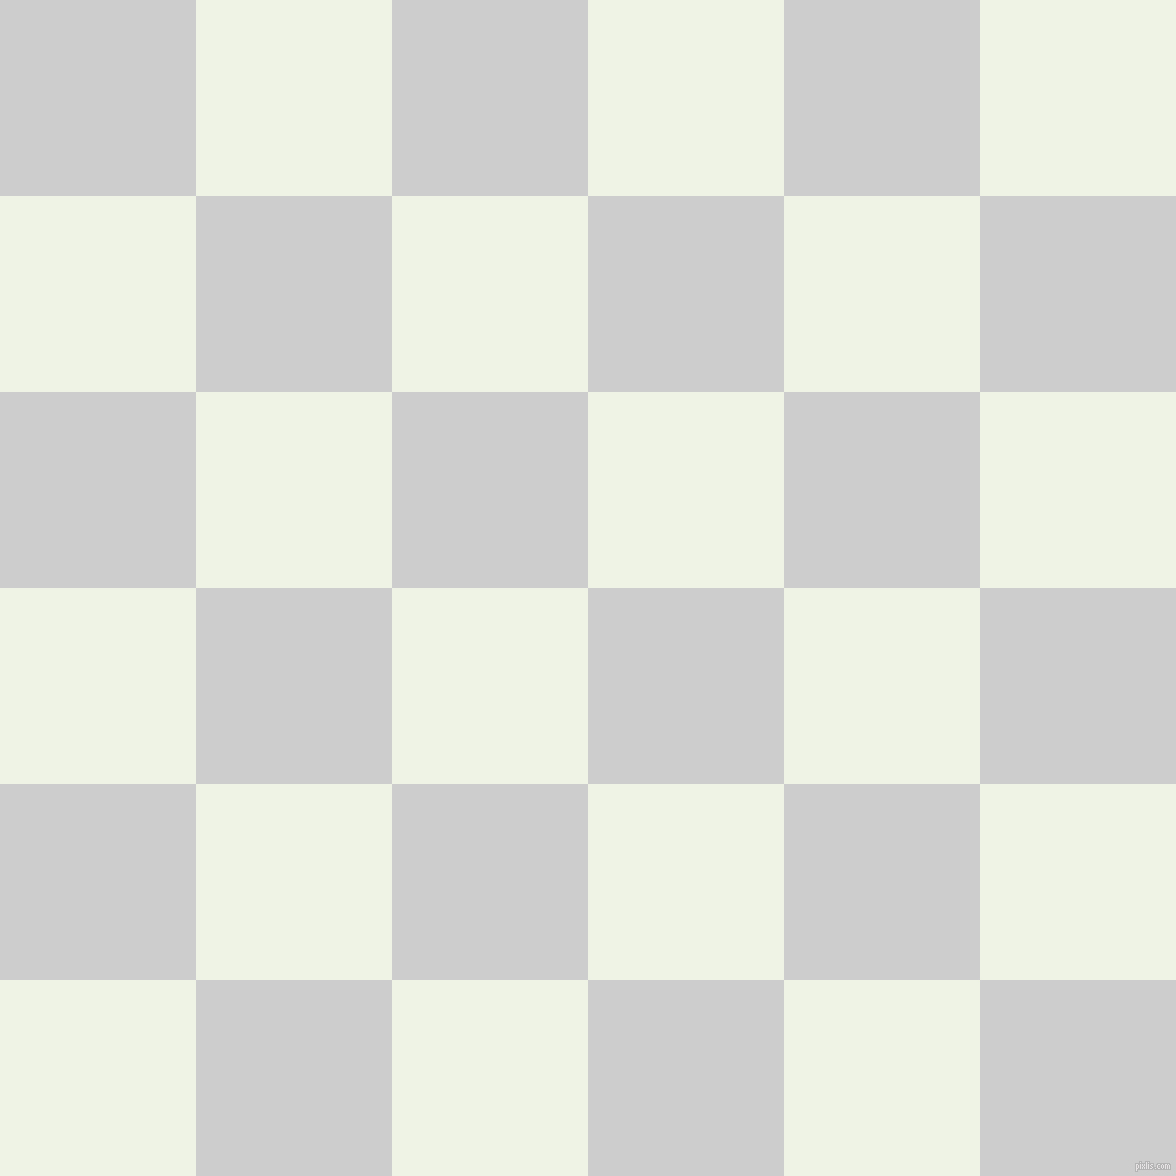 Checker Pattern PPT Backgrounds